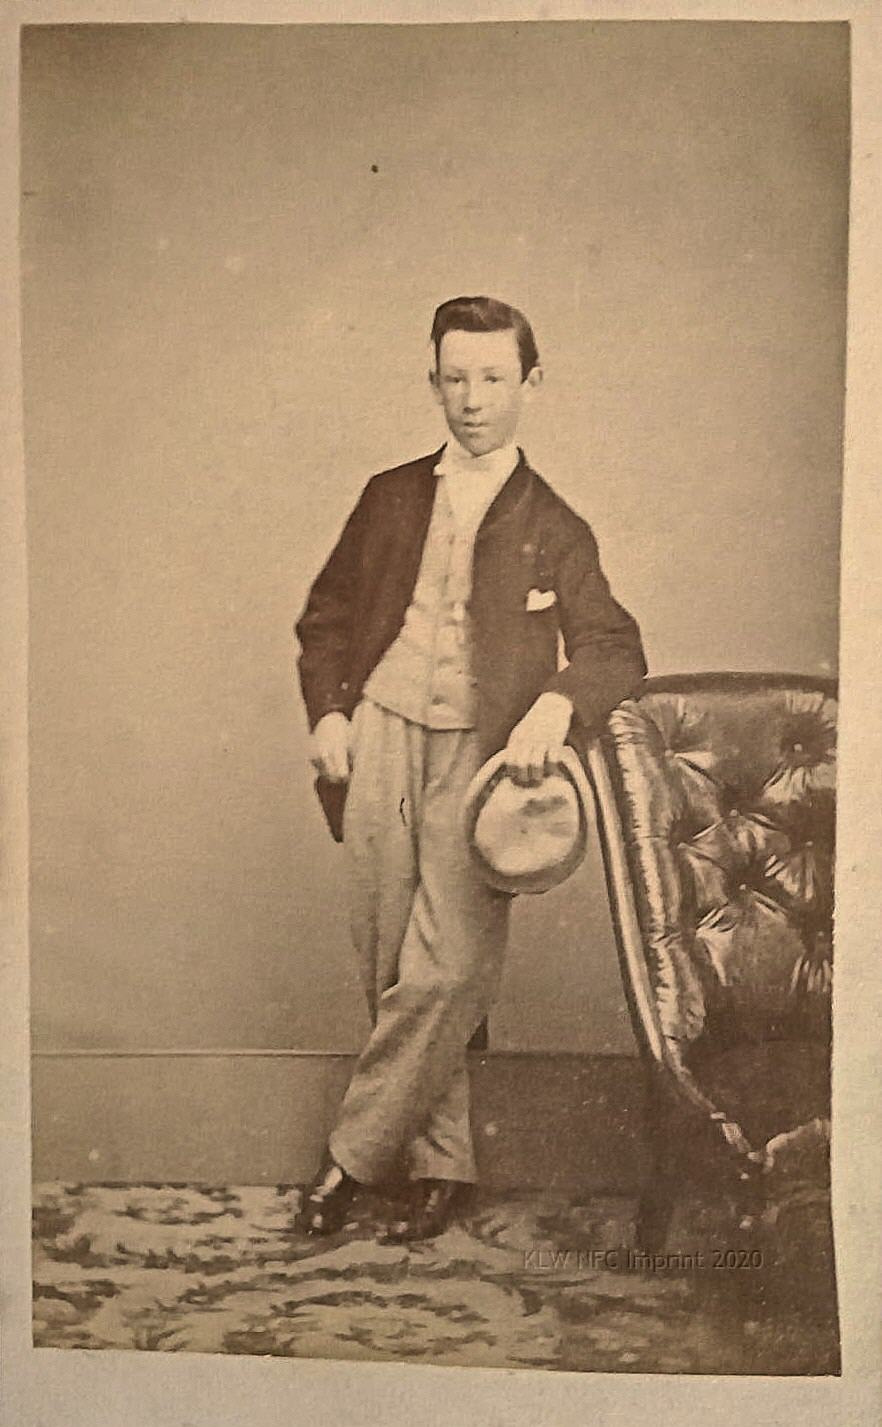 William John aka Jack Nevin 1865